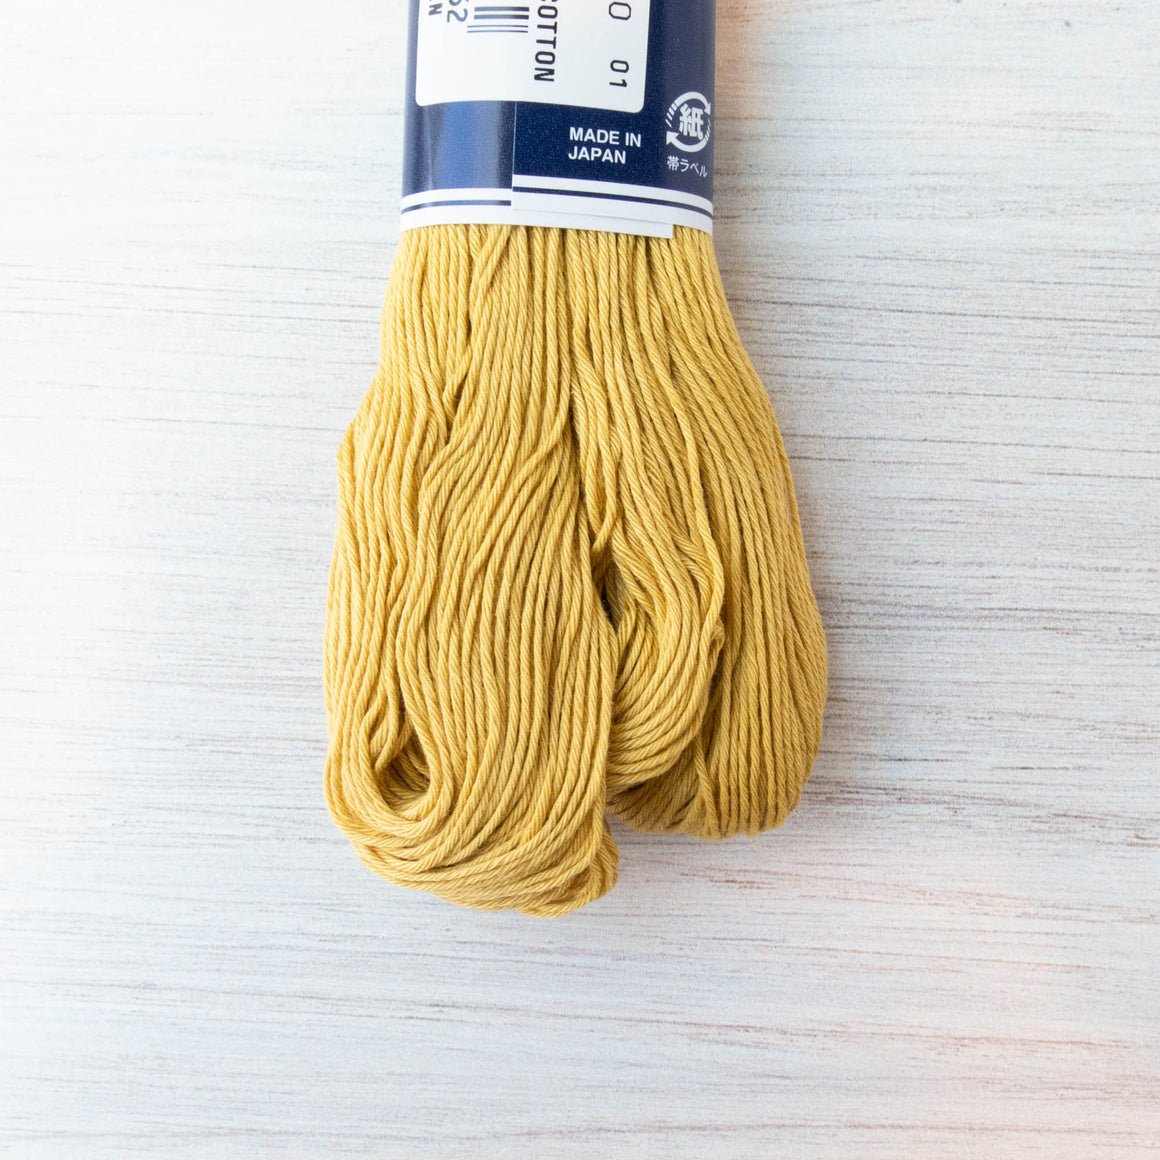 100m Large Skein Japanese Sashiko Thread - Gold (#106) Sashiko - Snuggly Monkey